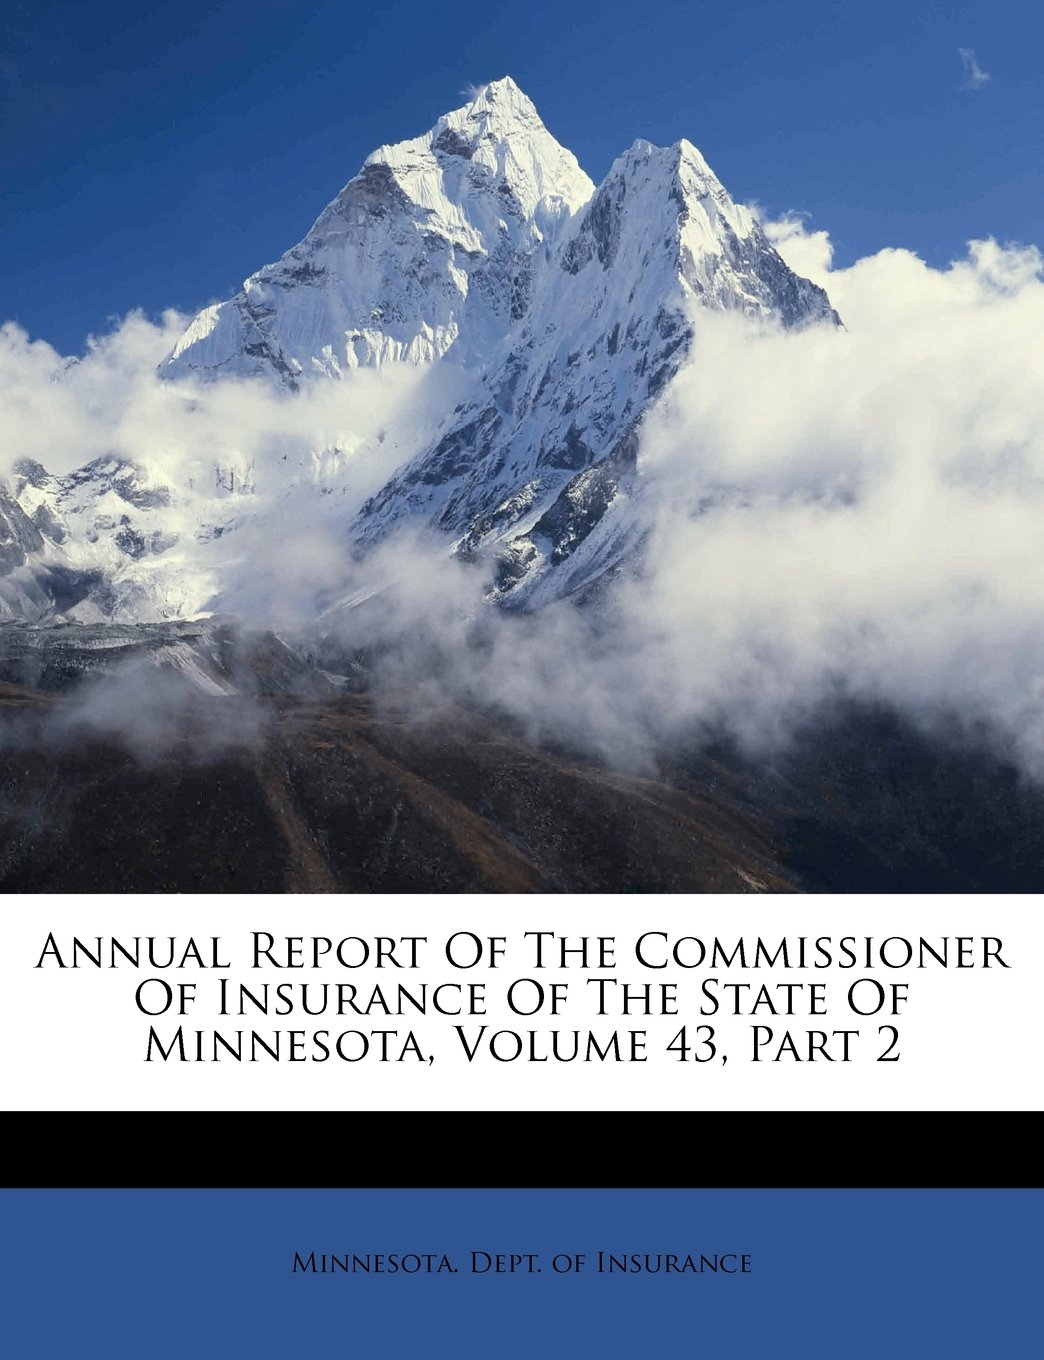 Download Annual Report Of The Commissioner Of Insurance Of The State Of Minnesota, Volume 43, Part 2 ebook